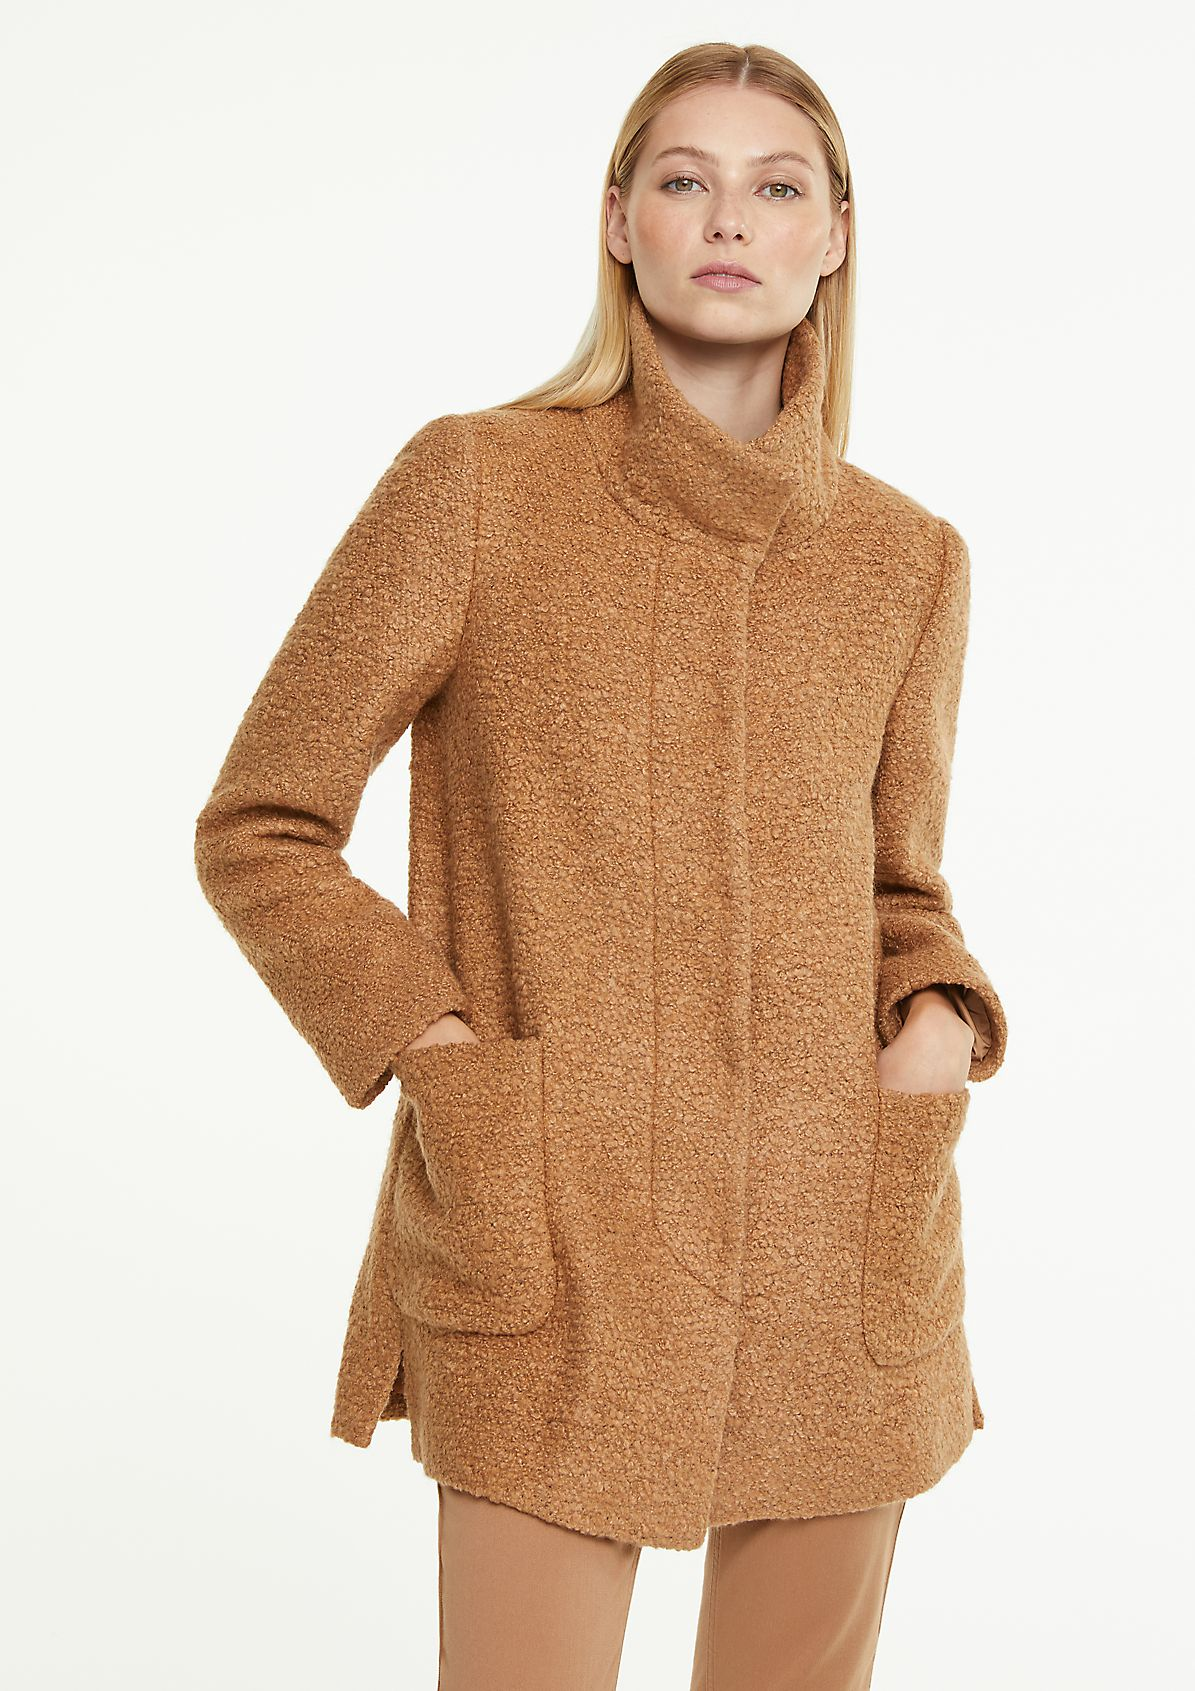 Bouclé jacket with a stand-up collar from comma